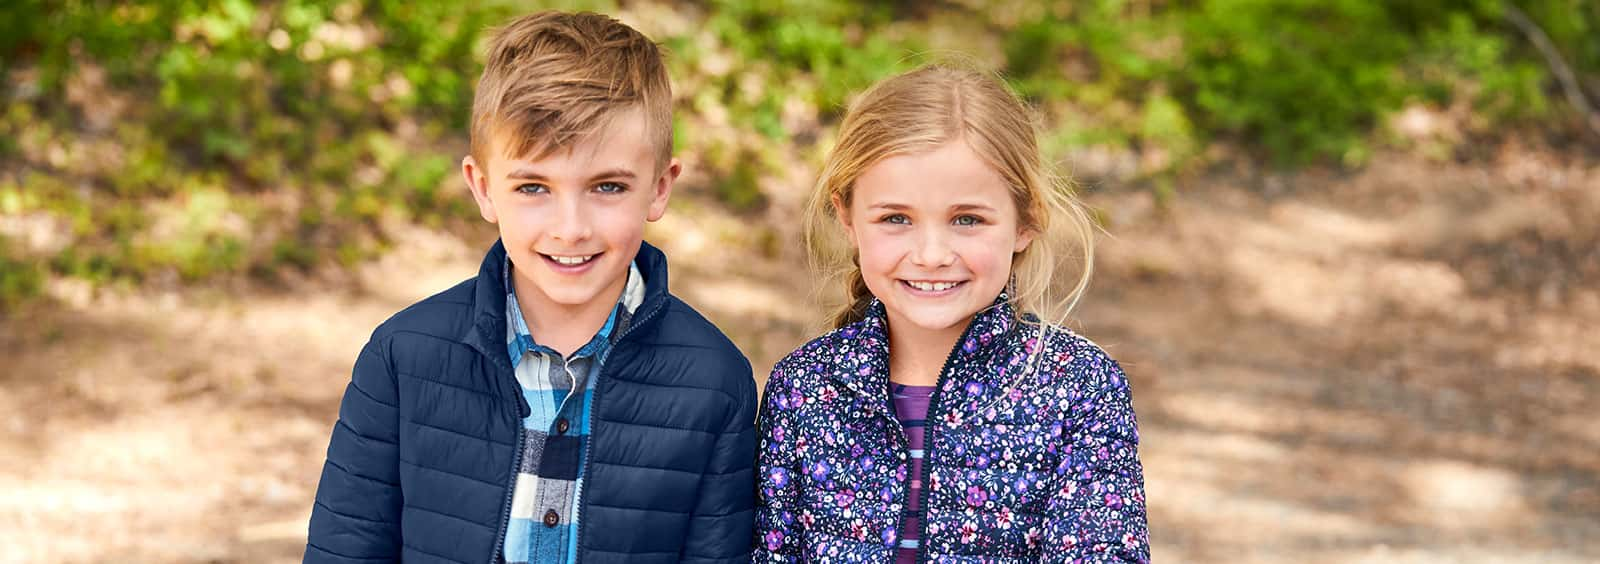 Cute Jackets for Fall Your Kids Would Love to Wear